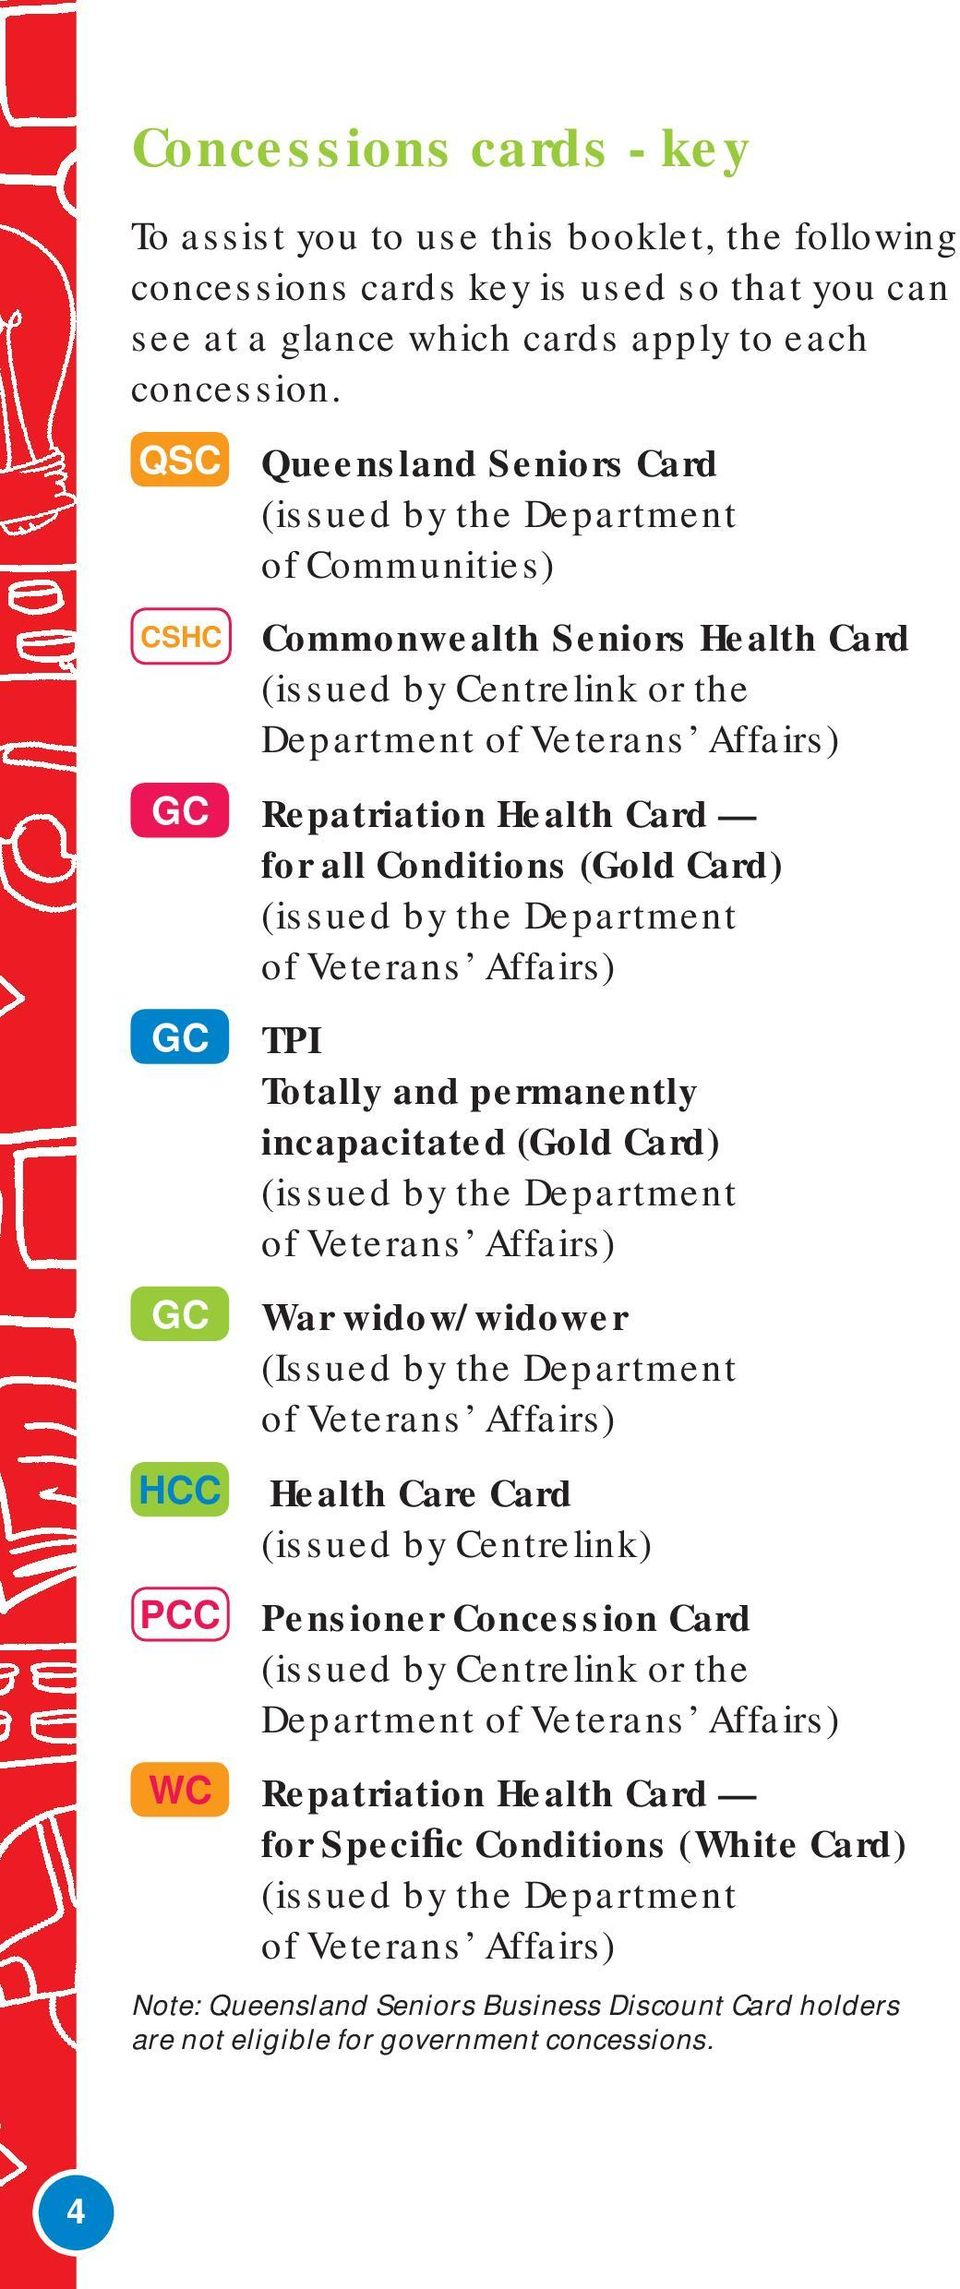 for all Conditions (Gold Card) (issued by the Department of Veterans Affairs) GC TPI Totally and permanently incapacitated (Gold Card) (issued by the Department of Veterans Affairs) GC War